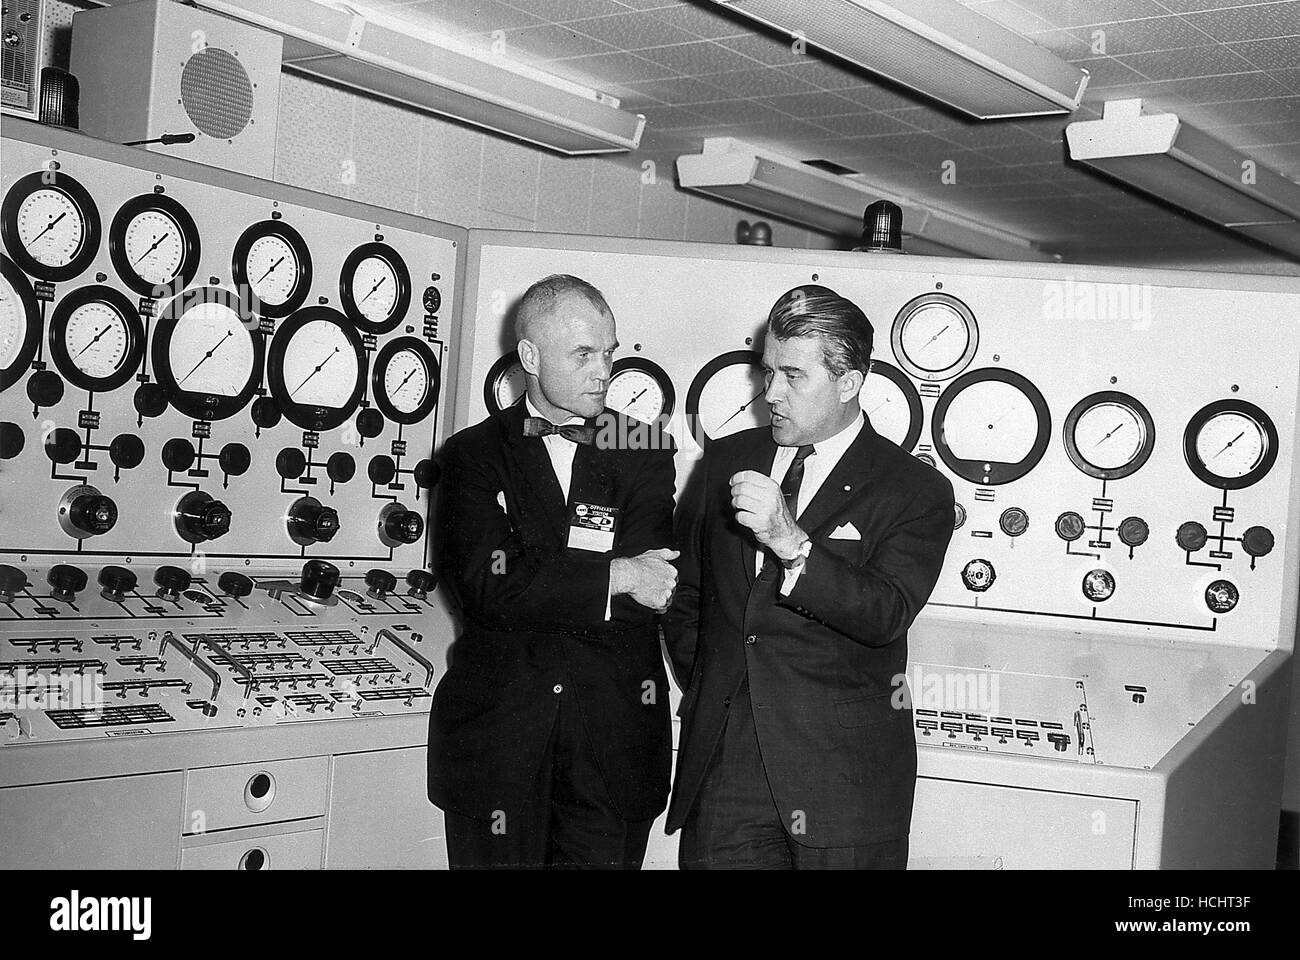 Dr. Wernher von Braun, right, briefs Astronaut John Glenn, left, in the control room of the Vehicle Test Section, Quality Assurance Division, Marshall Space Flight Center (MSFC) in Huntsville, Alabama, November 28, 1962.Credit: NASA via CNP - NO WIRE SERVICE - Photo: Nasa/Consolidated News Photos/NASA via CNP Stock Photo